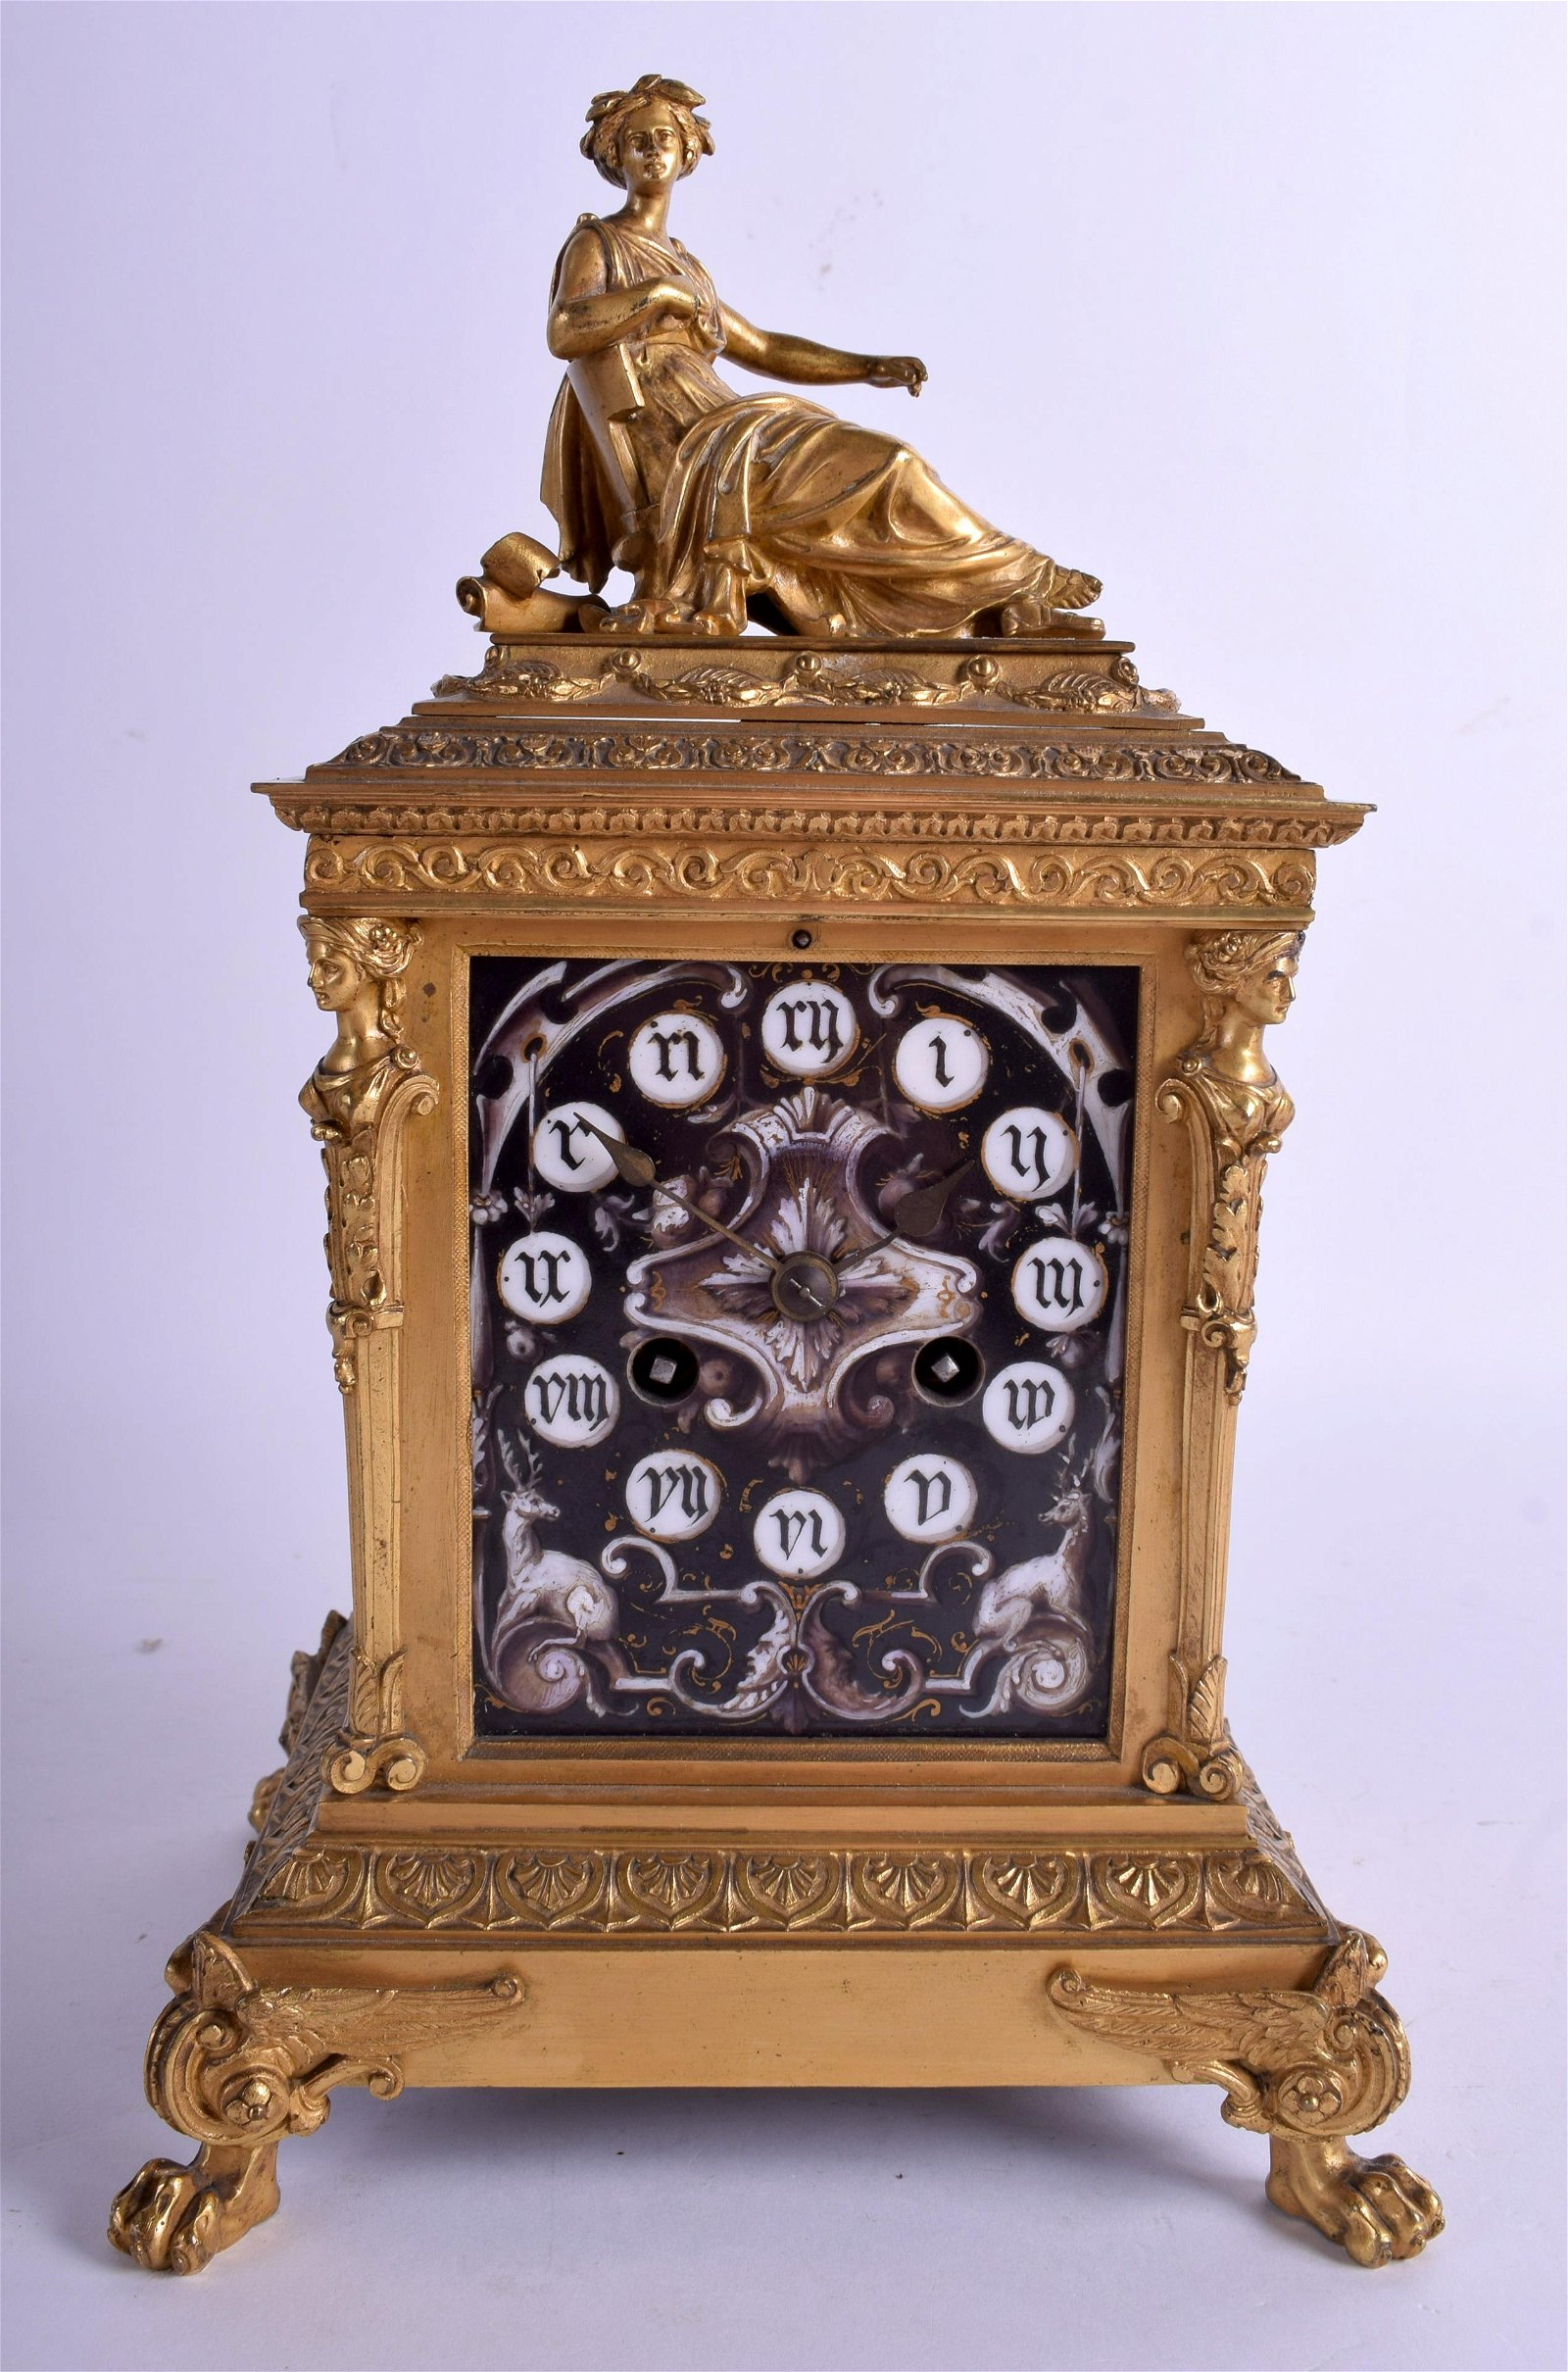 A MID 19TH CENTURY FRENCH ORMOLU AND LIMOGES ENAMEL